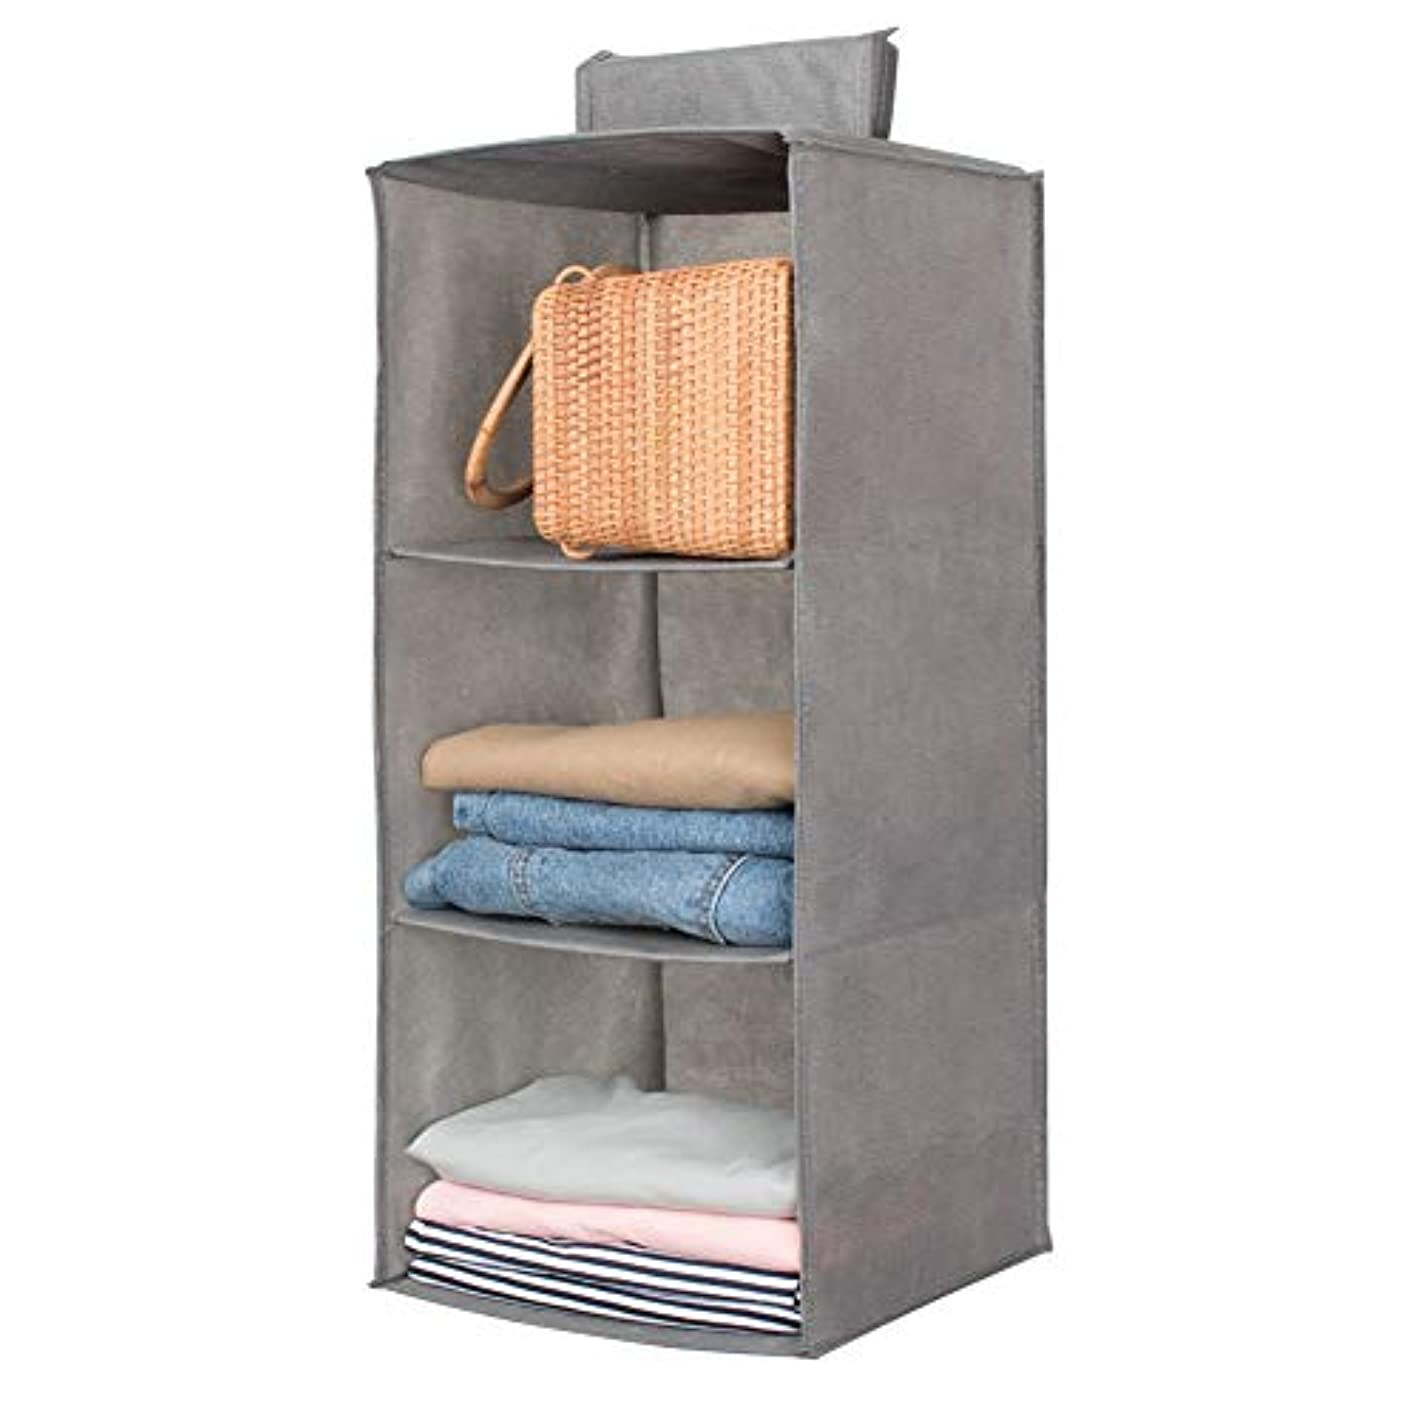 Hanging Closet Organizer,Sweater & sock Organizer with a Hook and Loops,Collapsible Storage Shelves for Clothes, pants and Shoes (Grey-3 Shelf)